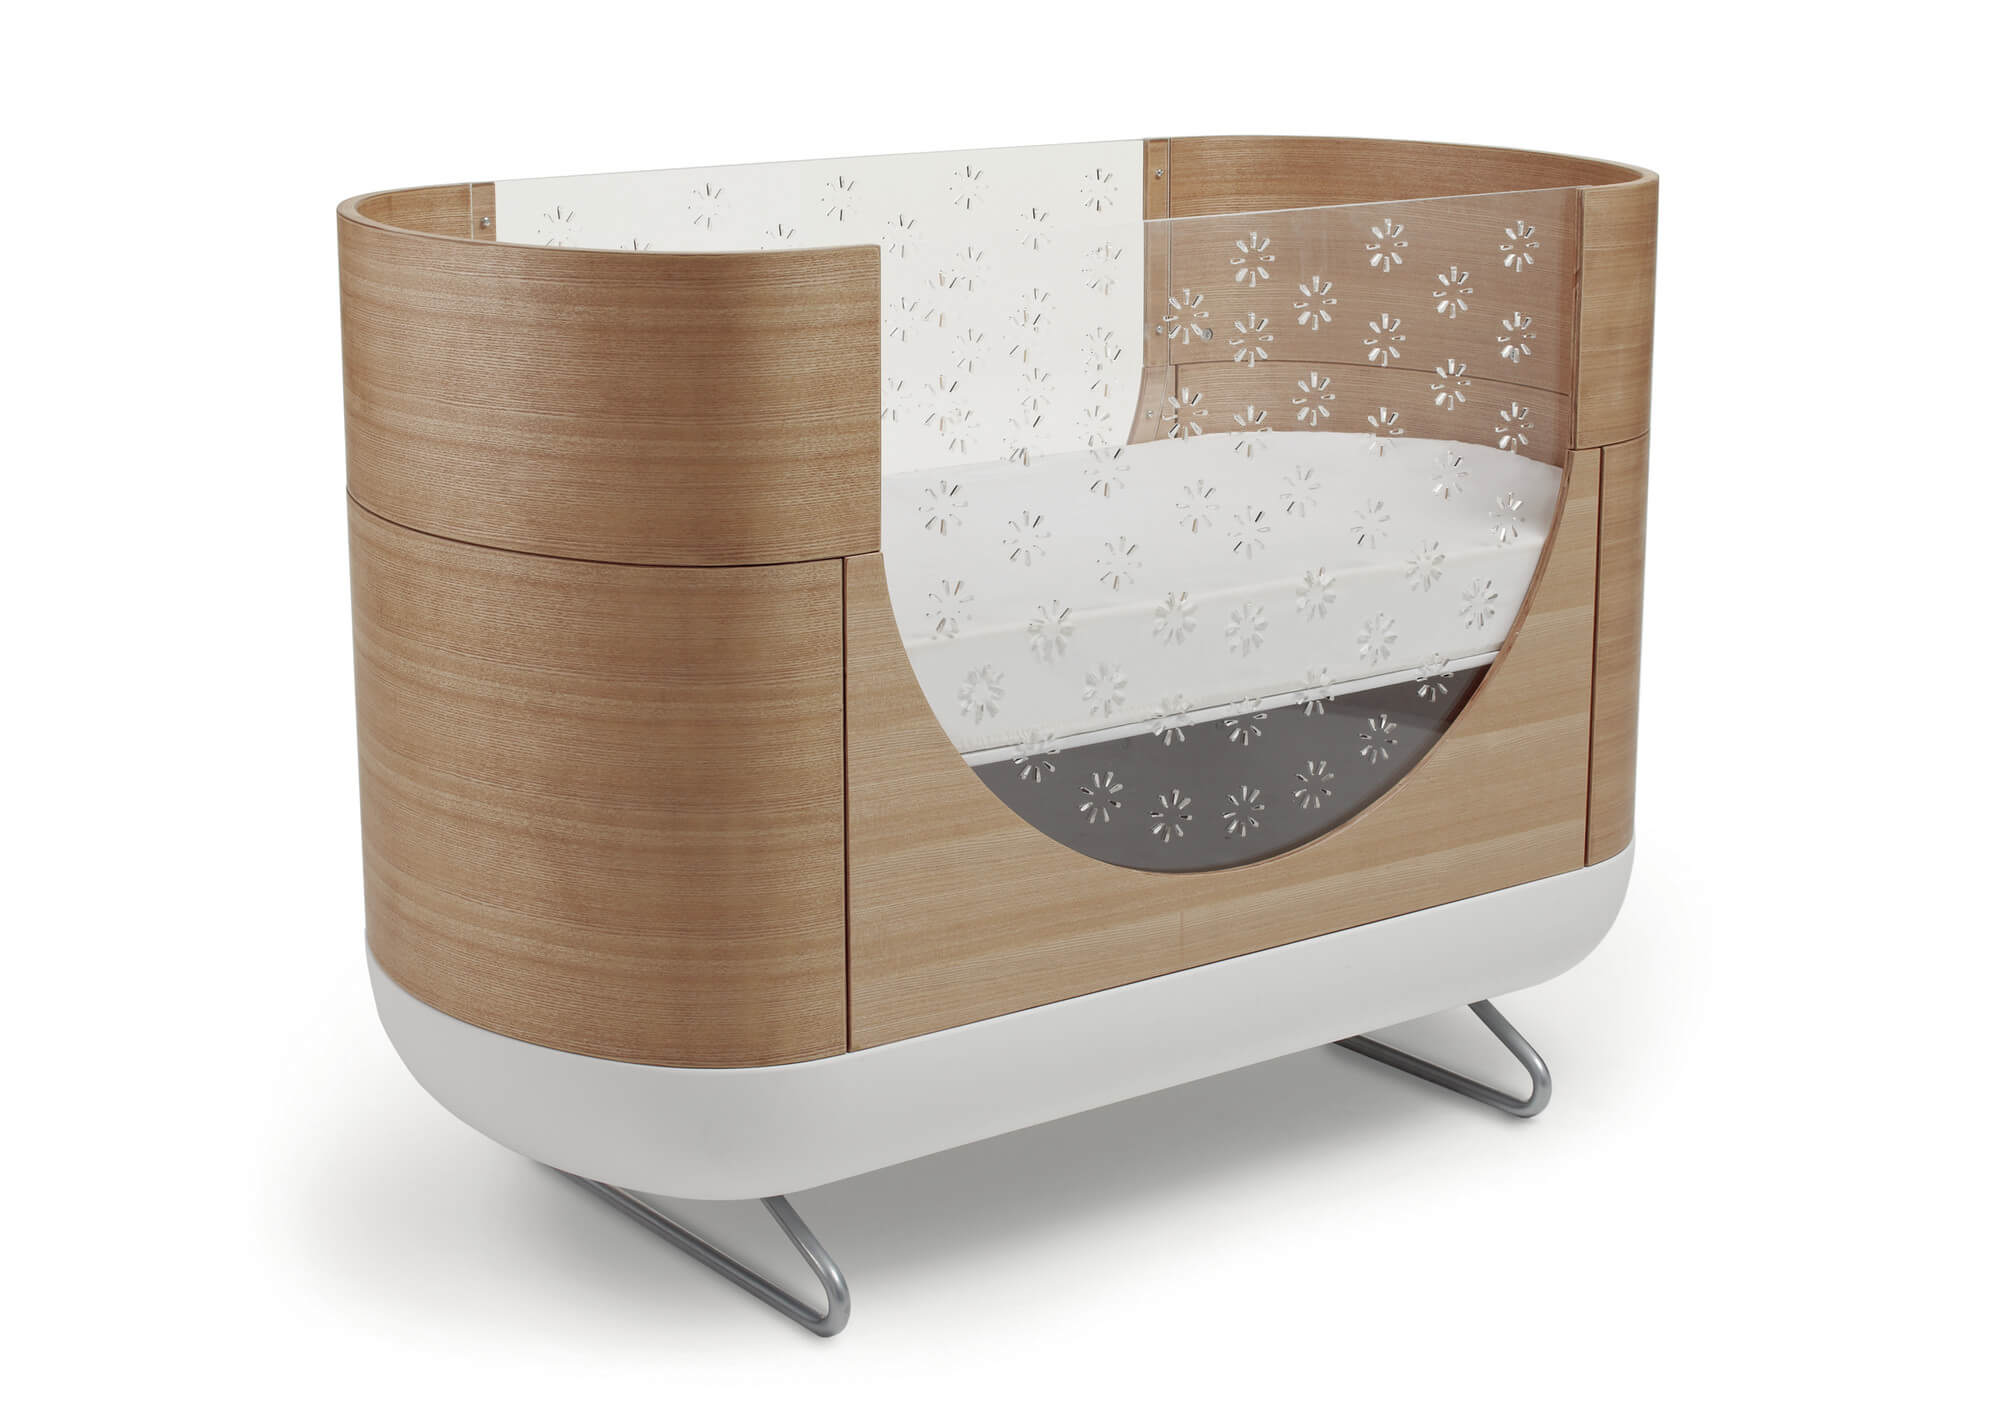 Used crib for sale toronto - This Striking Uniquely Designed Crib From Ubabub In Coccon Shape With Modernist Rounded Edges Will